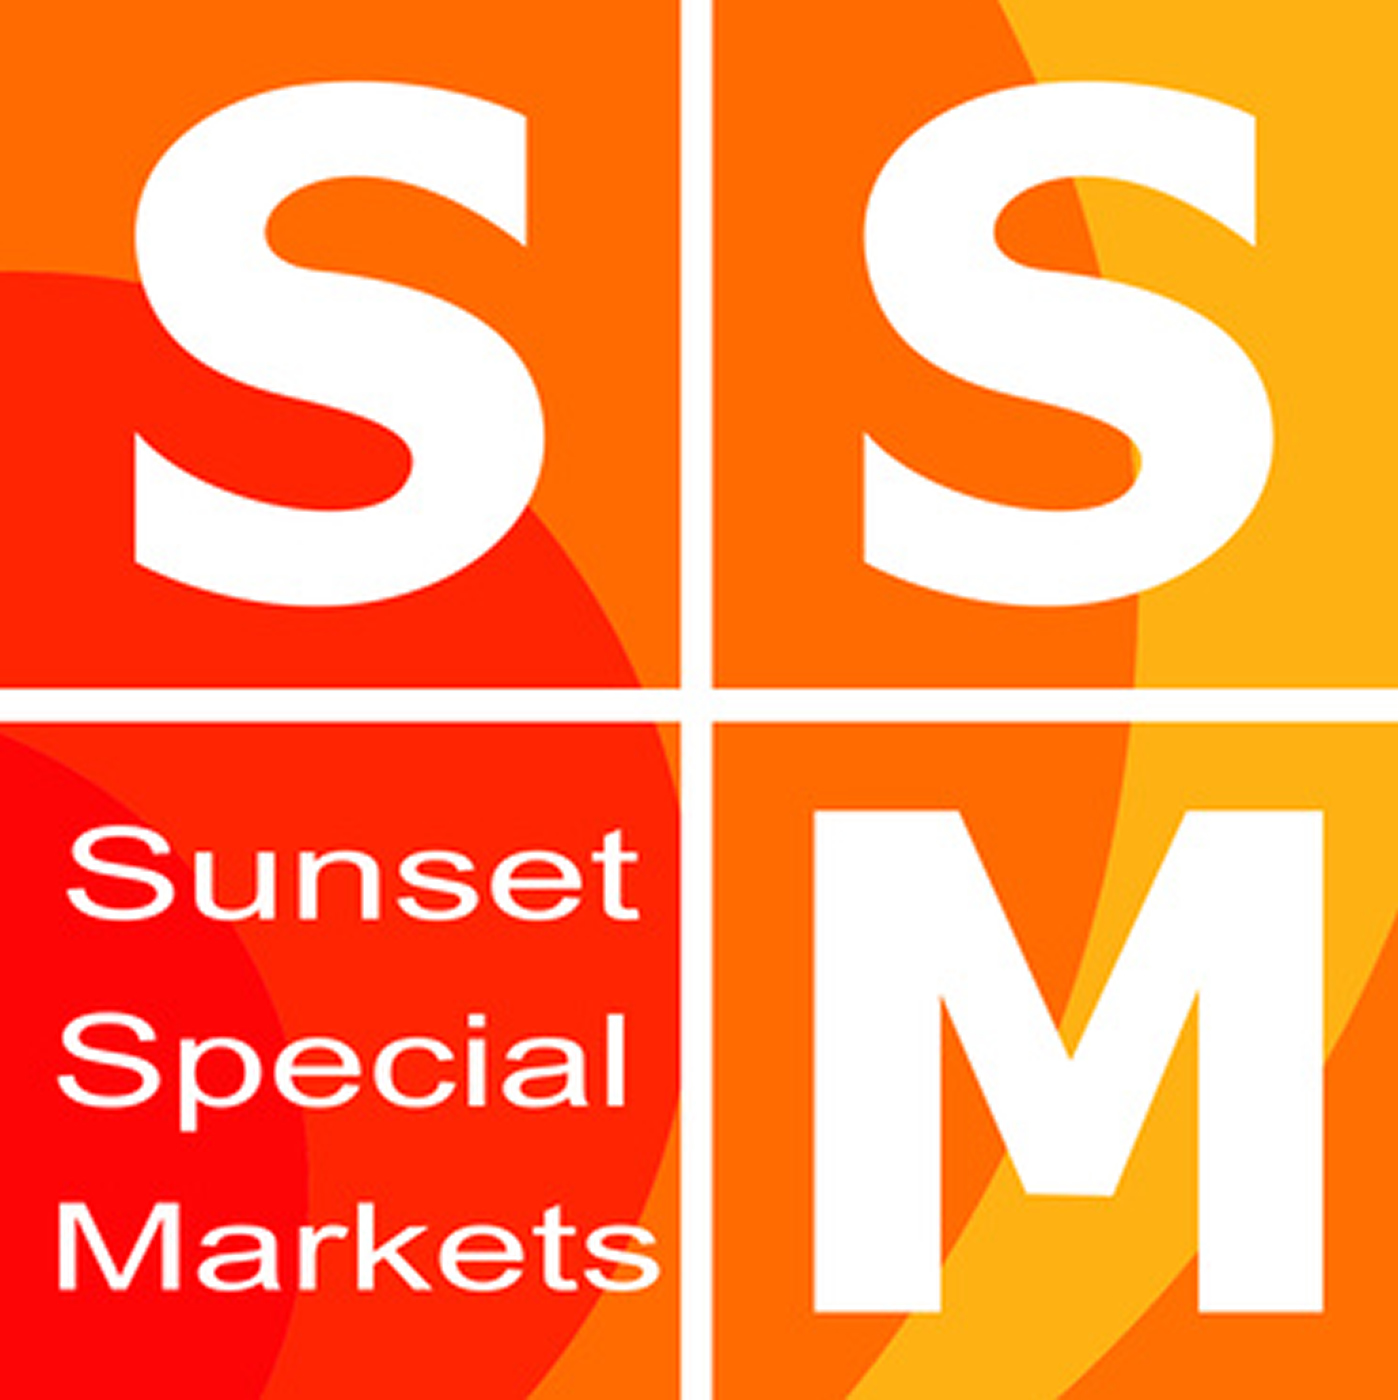 Sunset Special Markets (SSM)